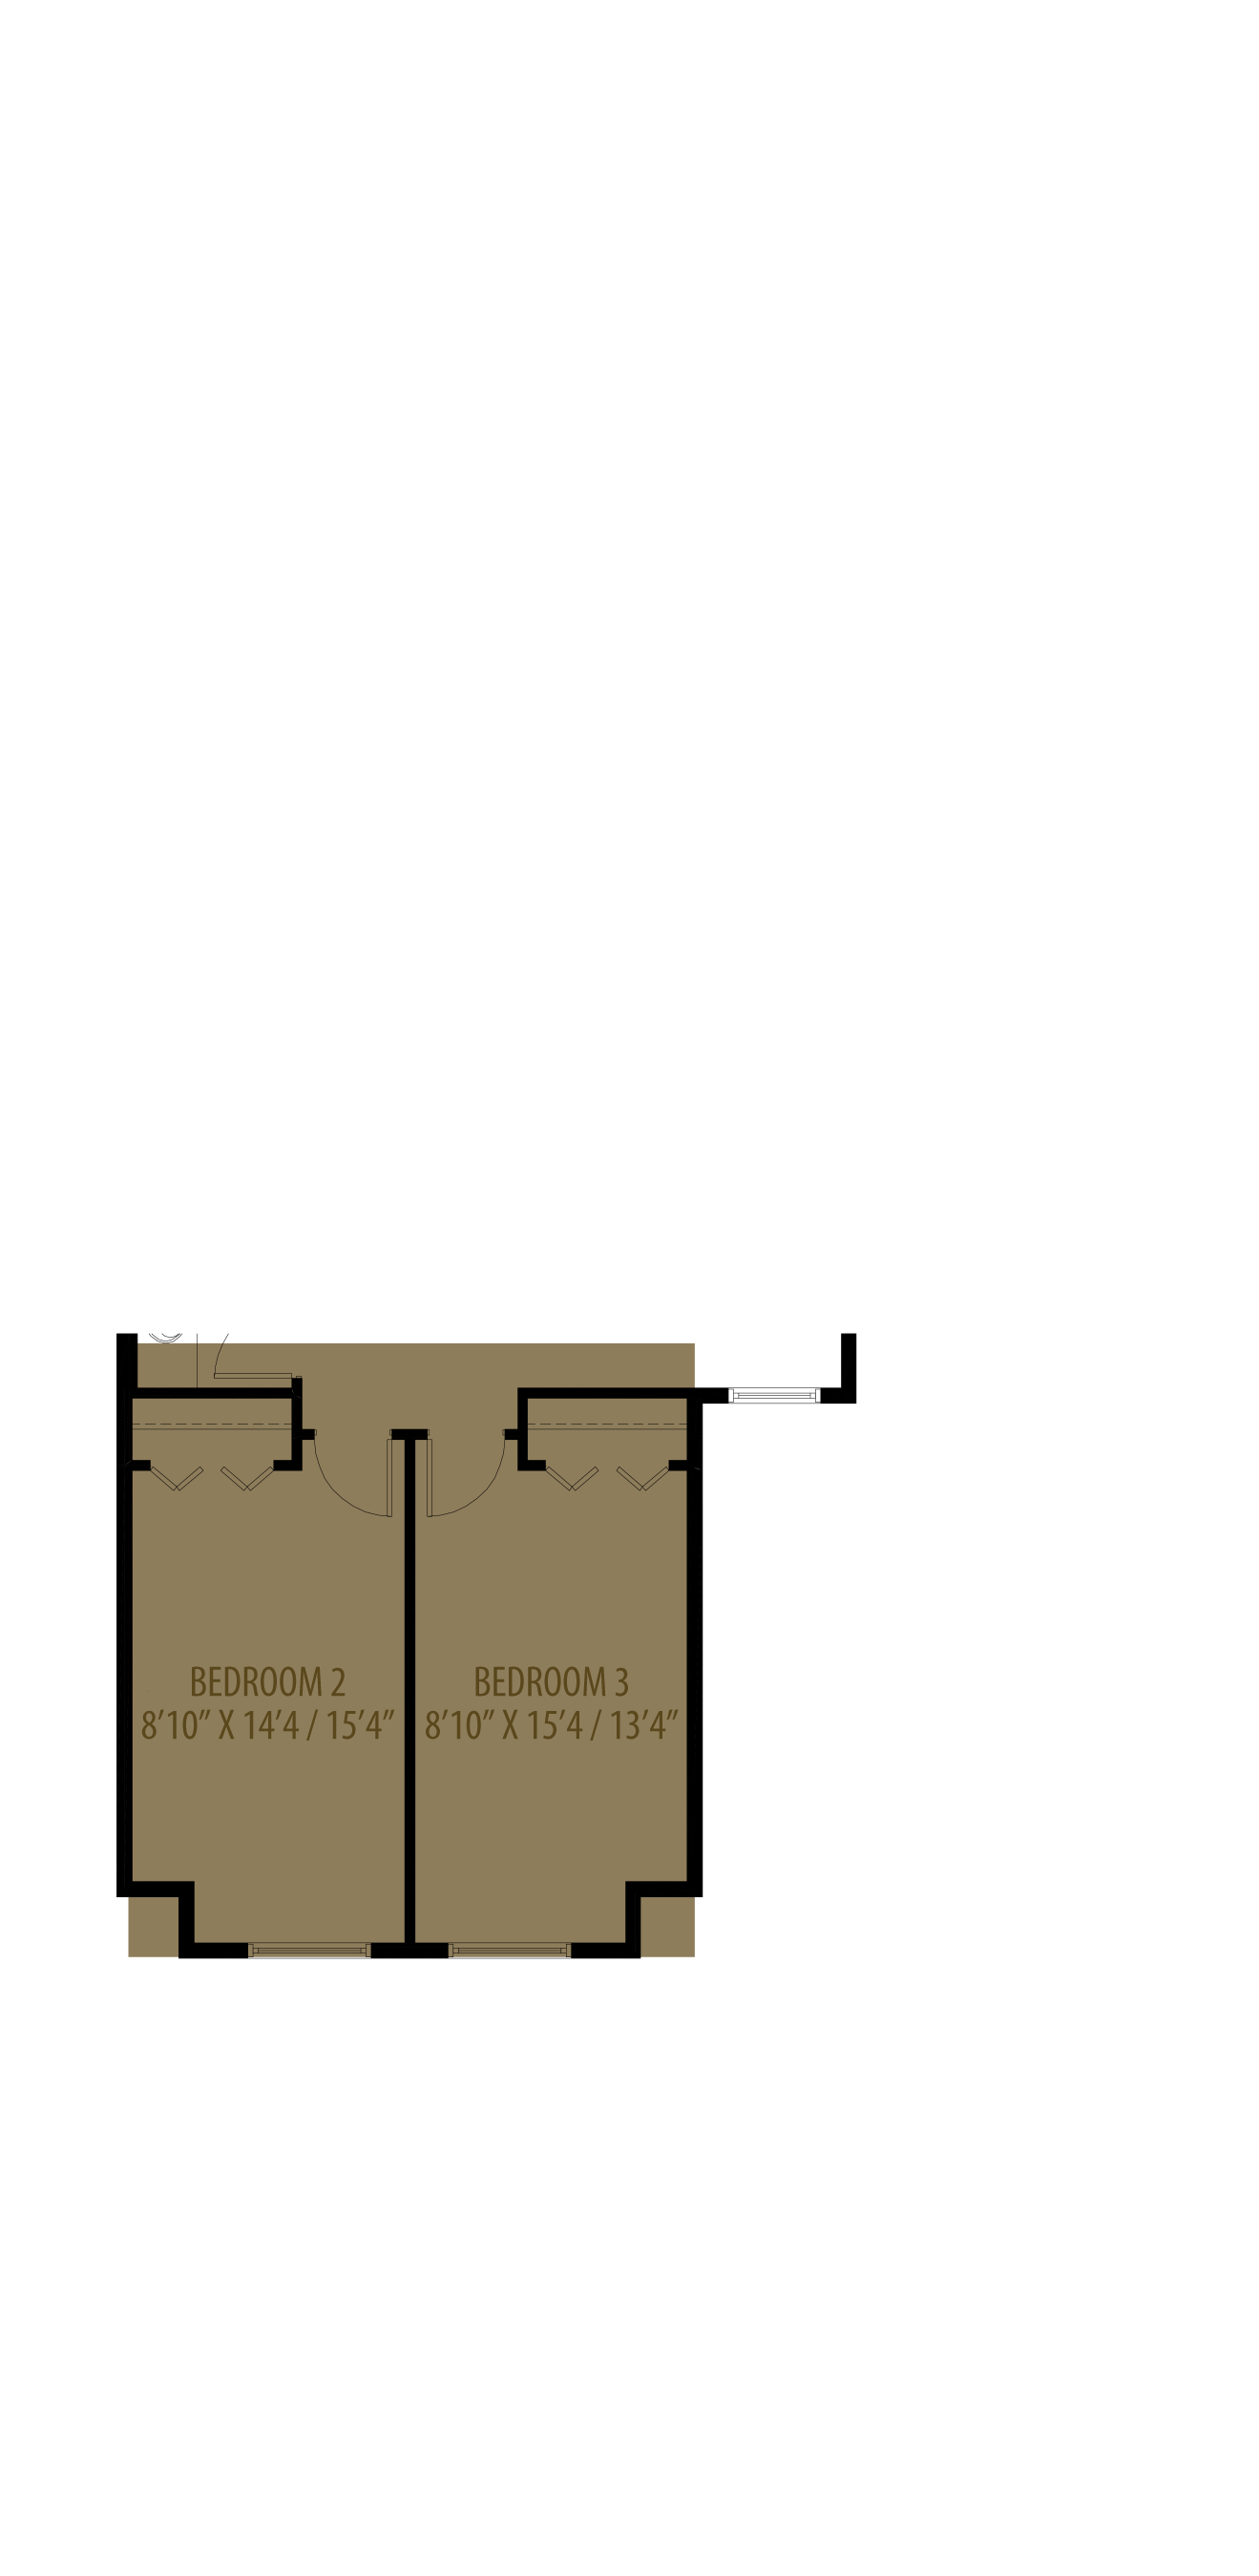 Extended Bedrooms